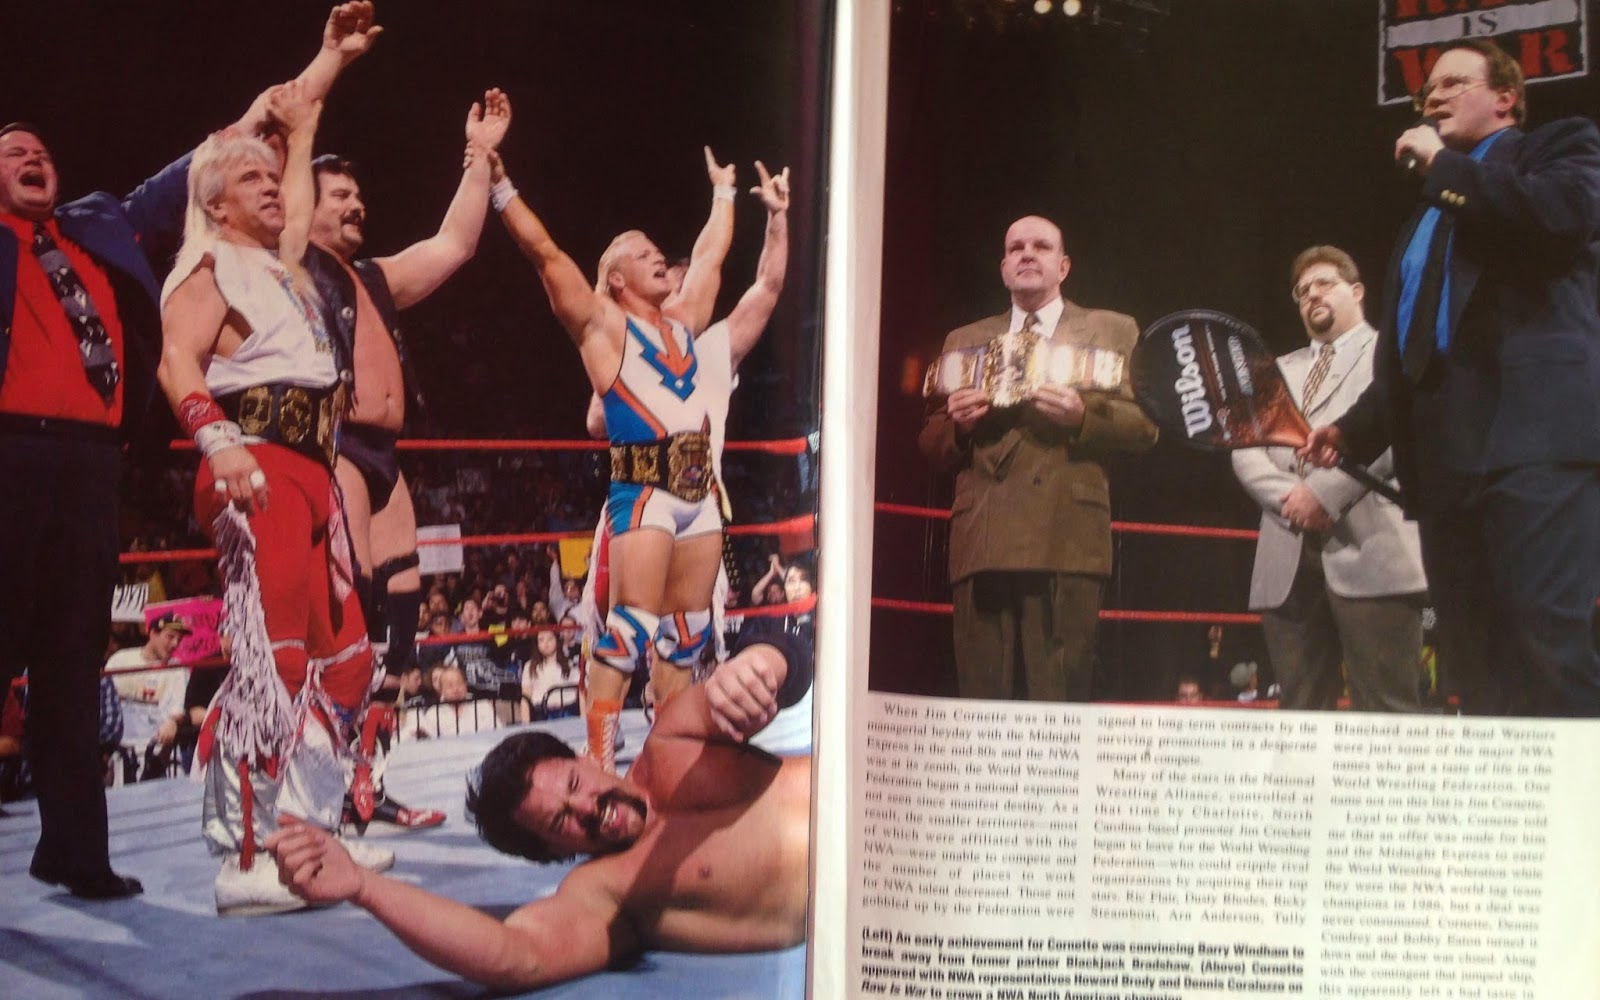 WWE - WWF Raw Magazine - April 1998 -  Jim Cornette leads an NWA revival